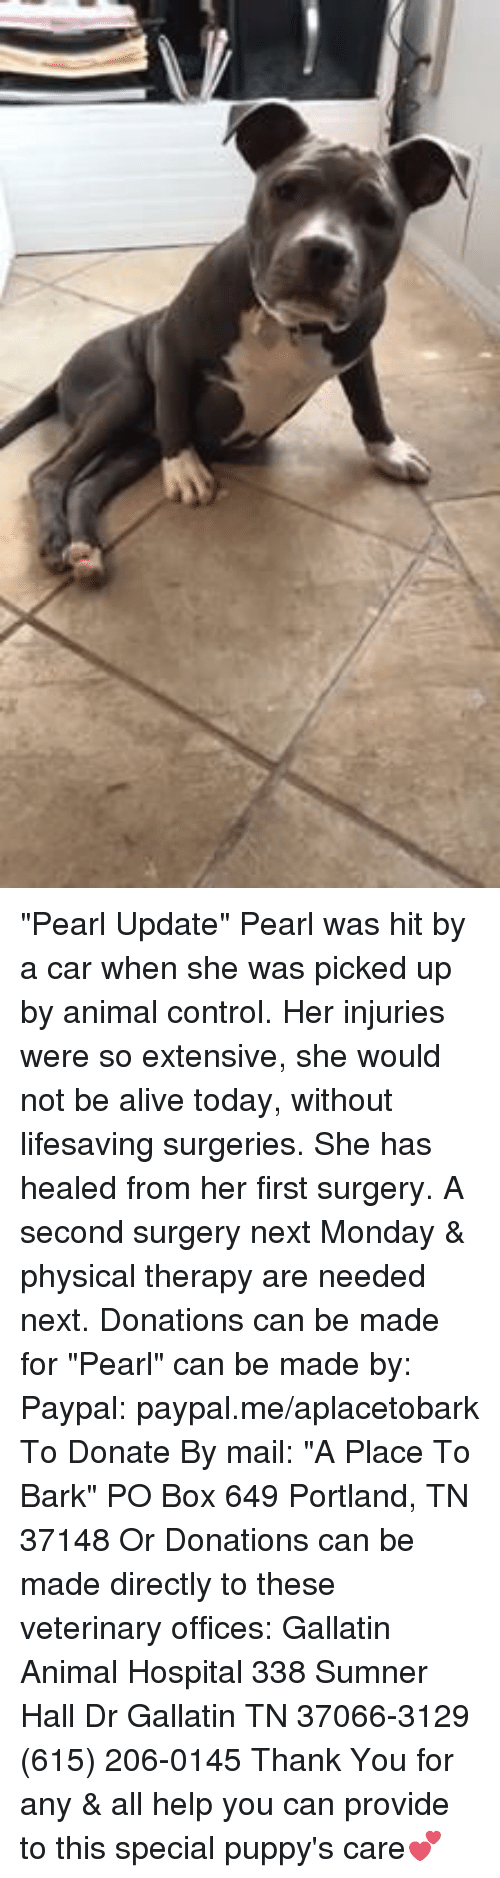 "Alive, Animals, and Boxing: ""Pearl Update"" Pearl was hit by a car when she was picked up by animal control.  Her injuries were so extensive, she would not be alive today, without lifesaving surgeries. She has healed from her first surgery.   A second surgery next Monday & physical therapy are needed next. Donations can be made for ""Pearl"" can be made by: Paypal: paypal.me/aplacetobark To Donate By mail:  ""A Place To Bark"" PO Box 649 Portland, TN 37148 Or Donations can be made directly to these veterinary offices: Gallatin Animal Hospital 338 Sumner Hall Dr Gallatin TN 37066-3129 (615) 206-0145  Thank You for any & all help you can provide to this special puppy's care💕"